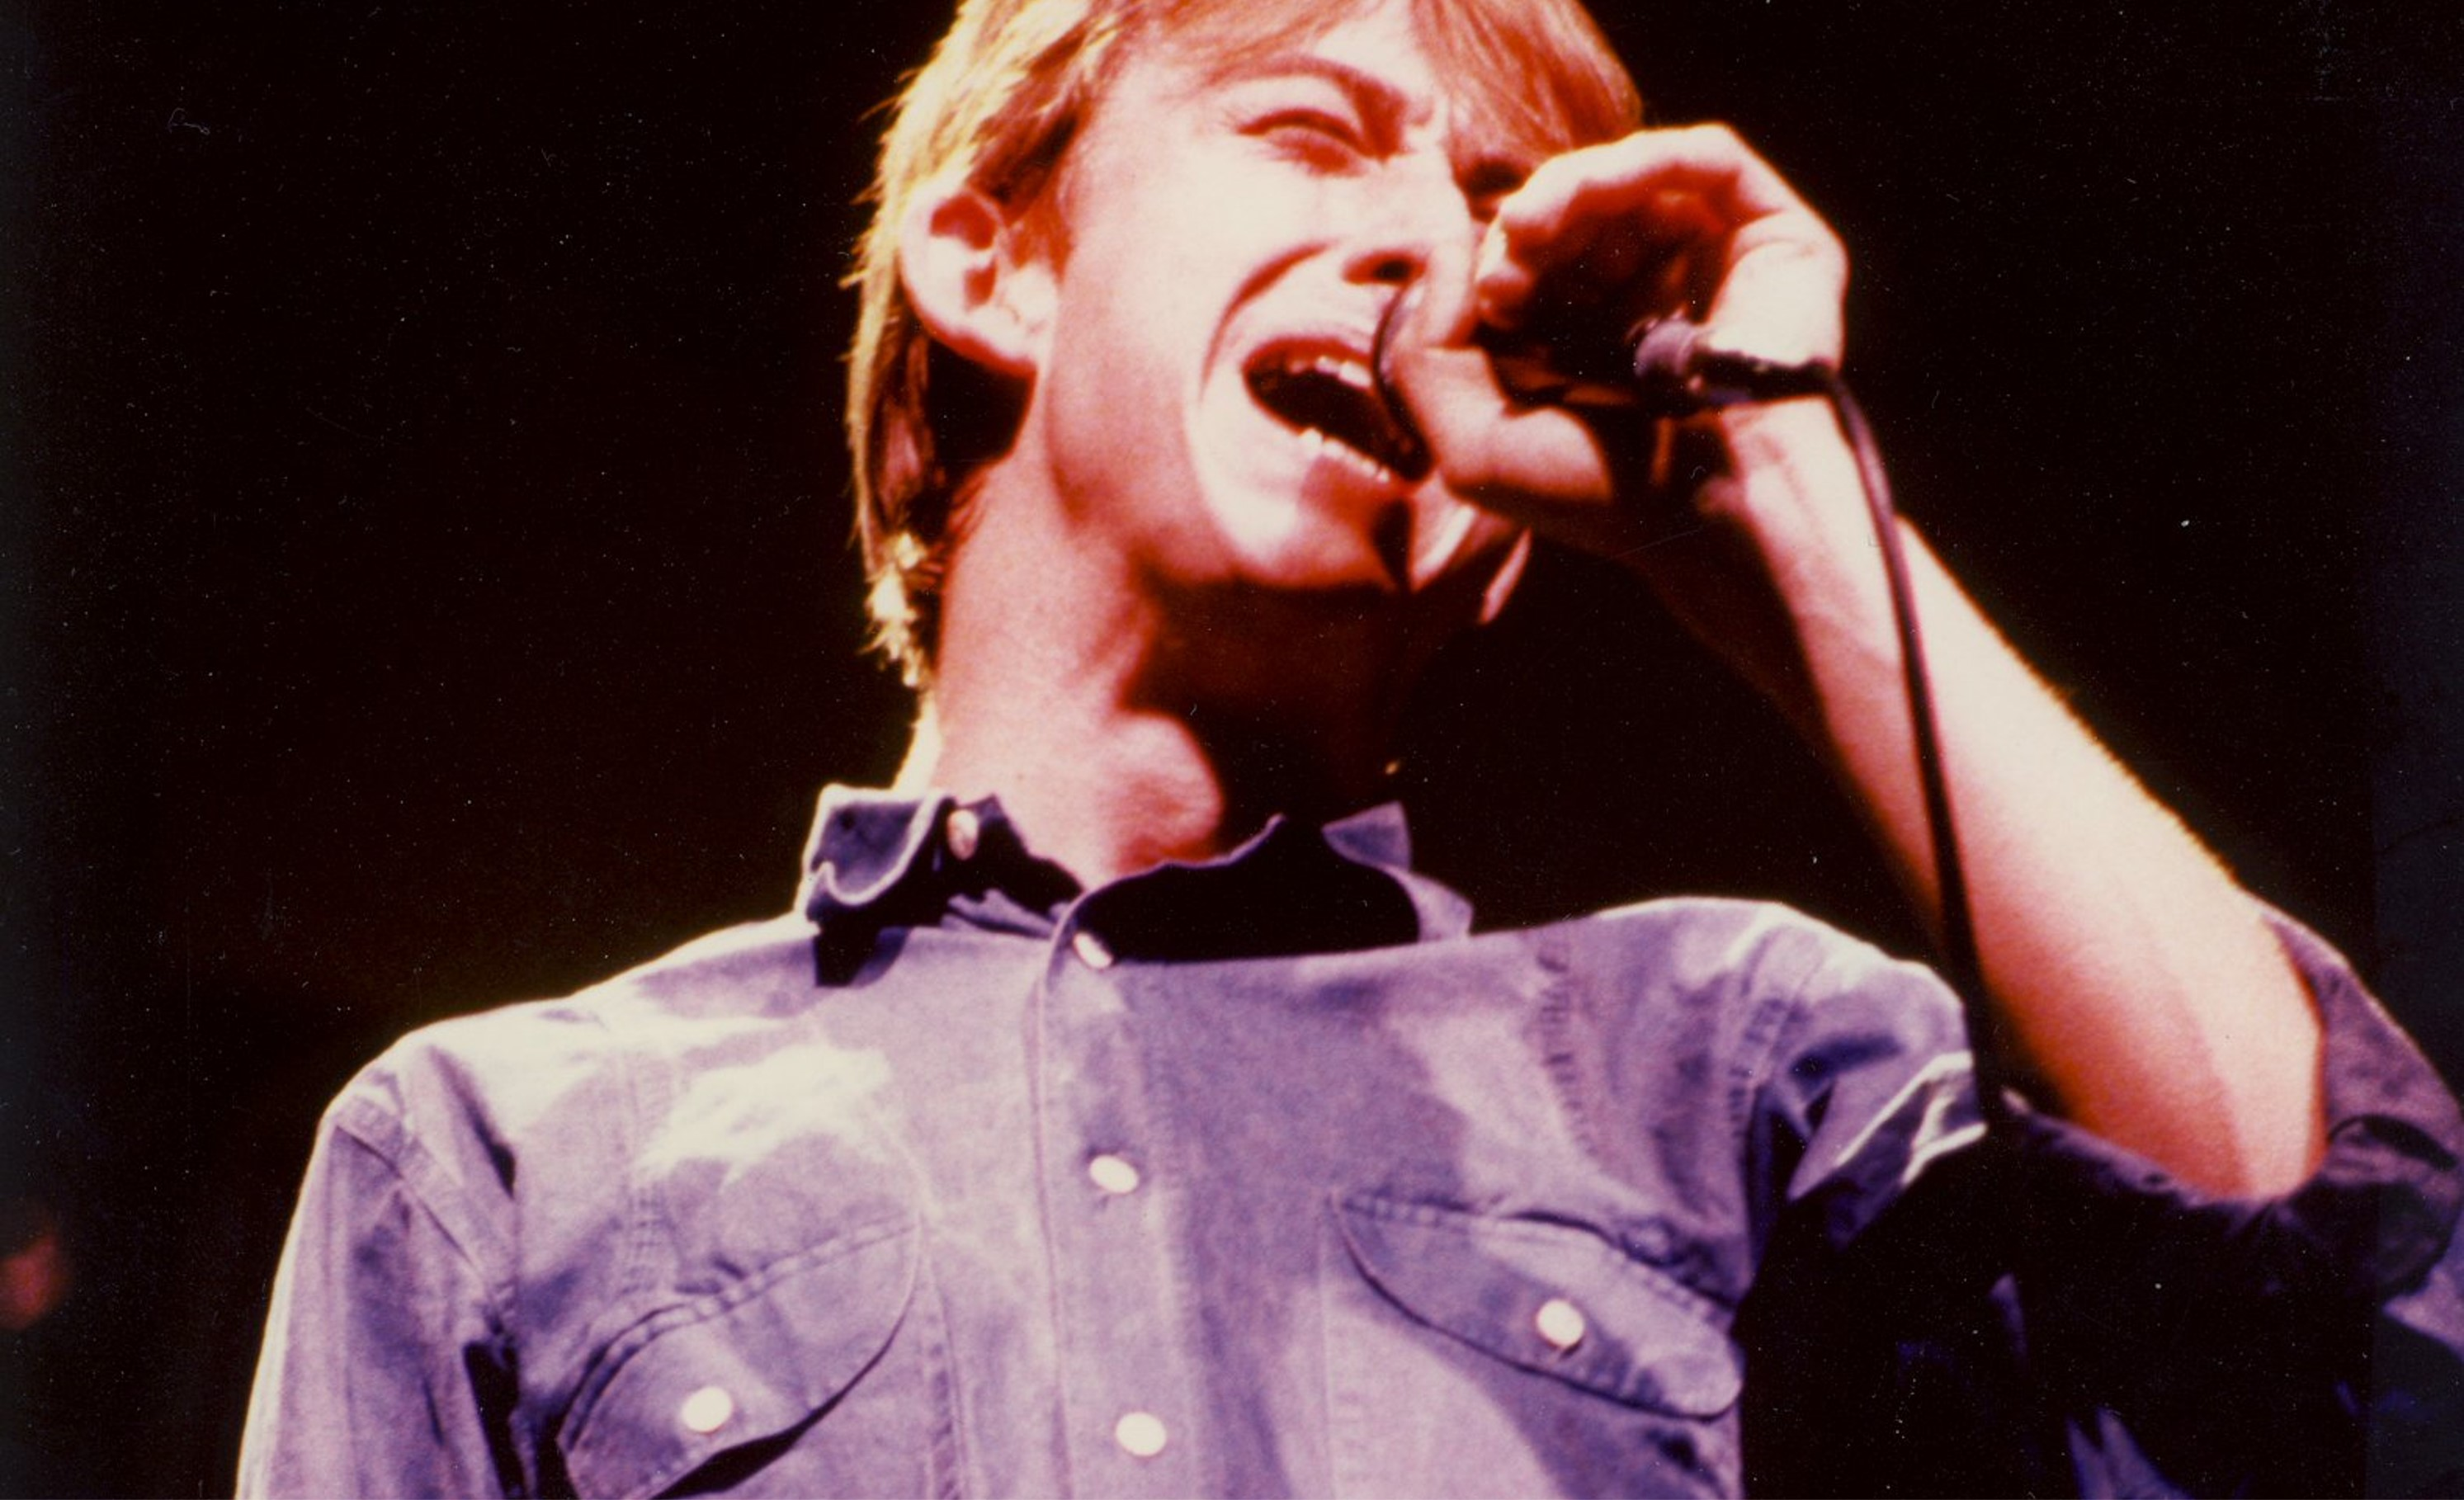 Talk Talk at uea in 1982